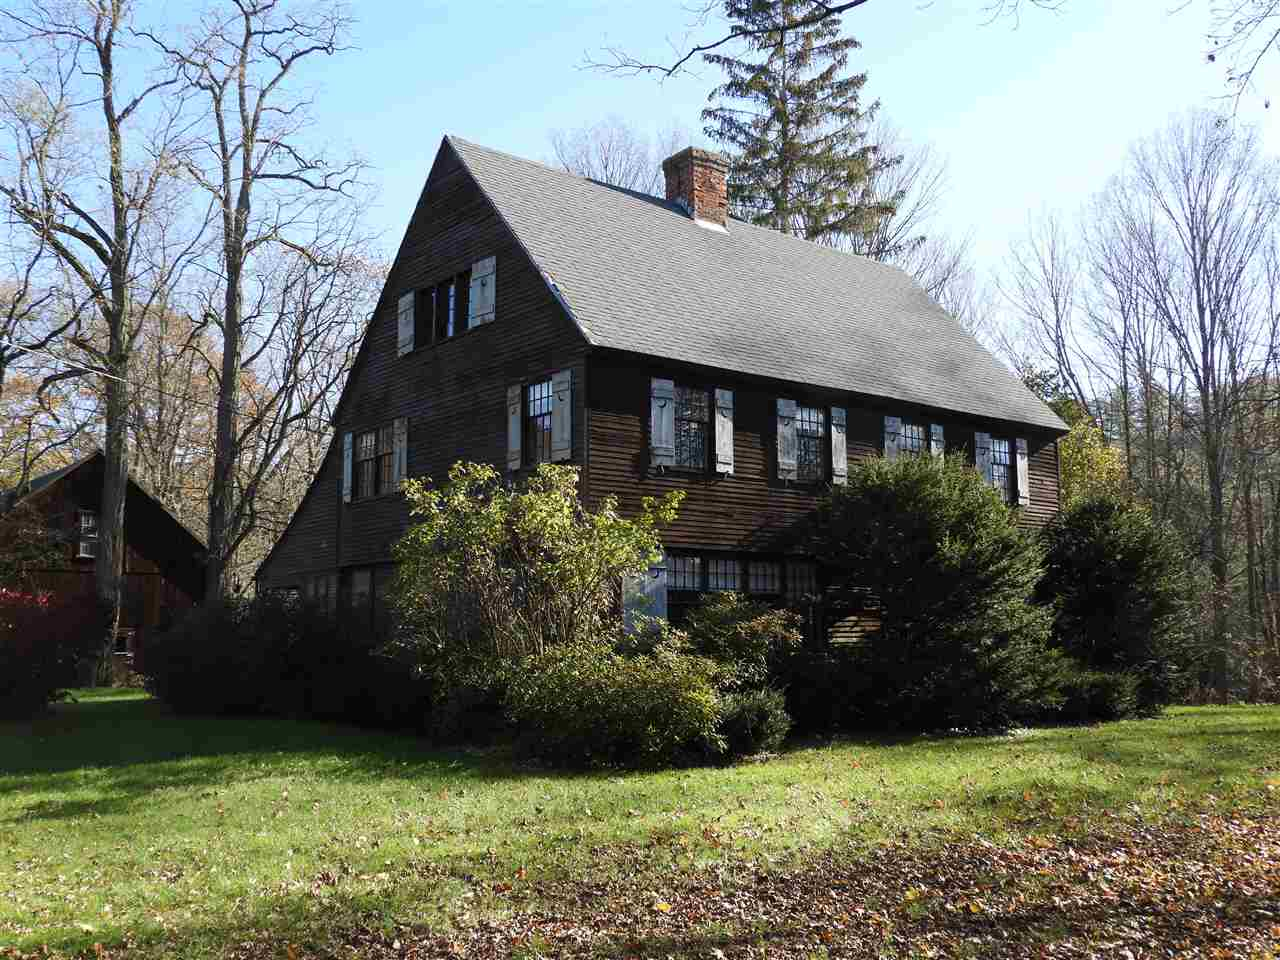 MLS 4727144: 136 Upper Walpole Road, Walpole NH